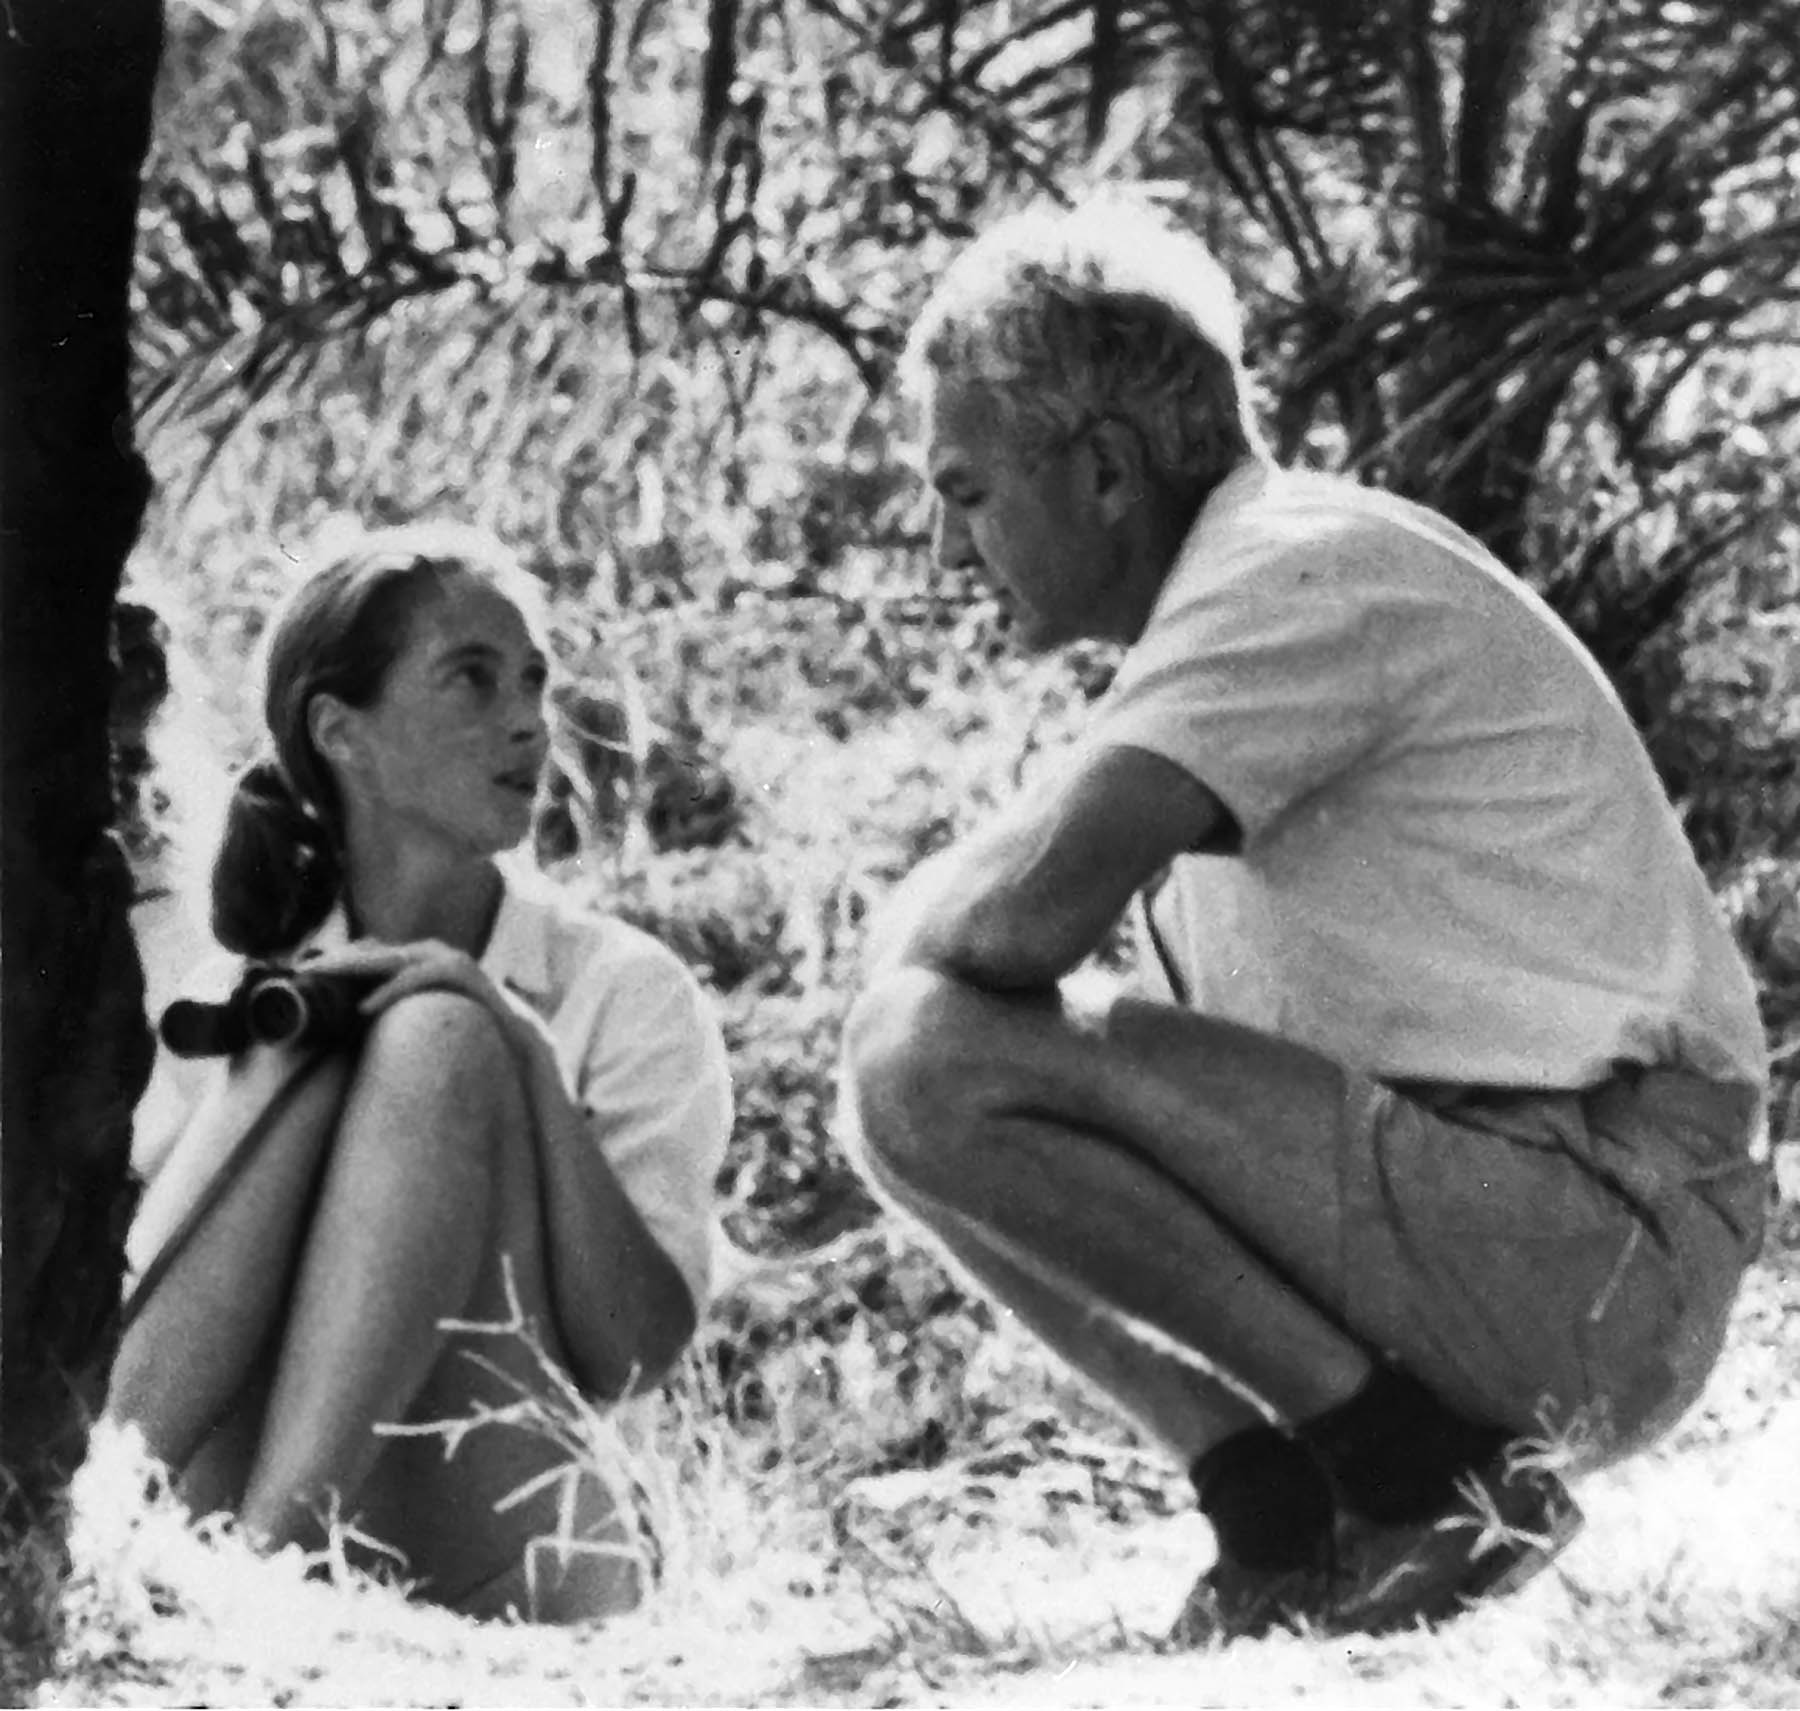 Jane Goodall and Robert Hinde in Gombe Stream Chimpanzee Reserve